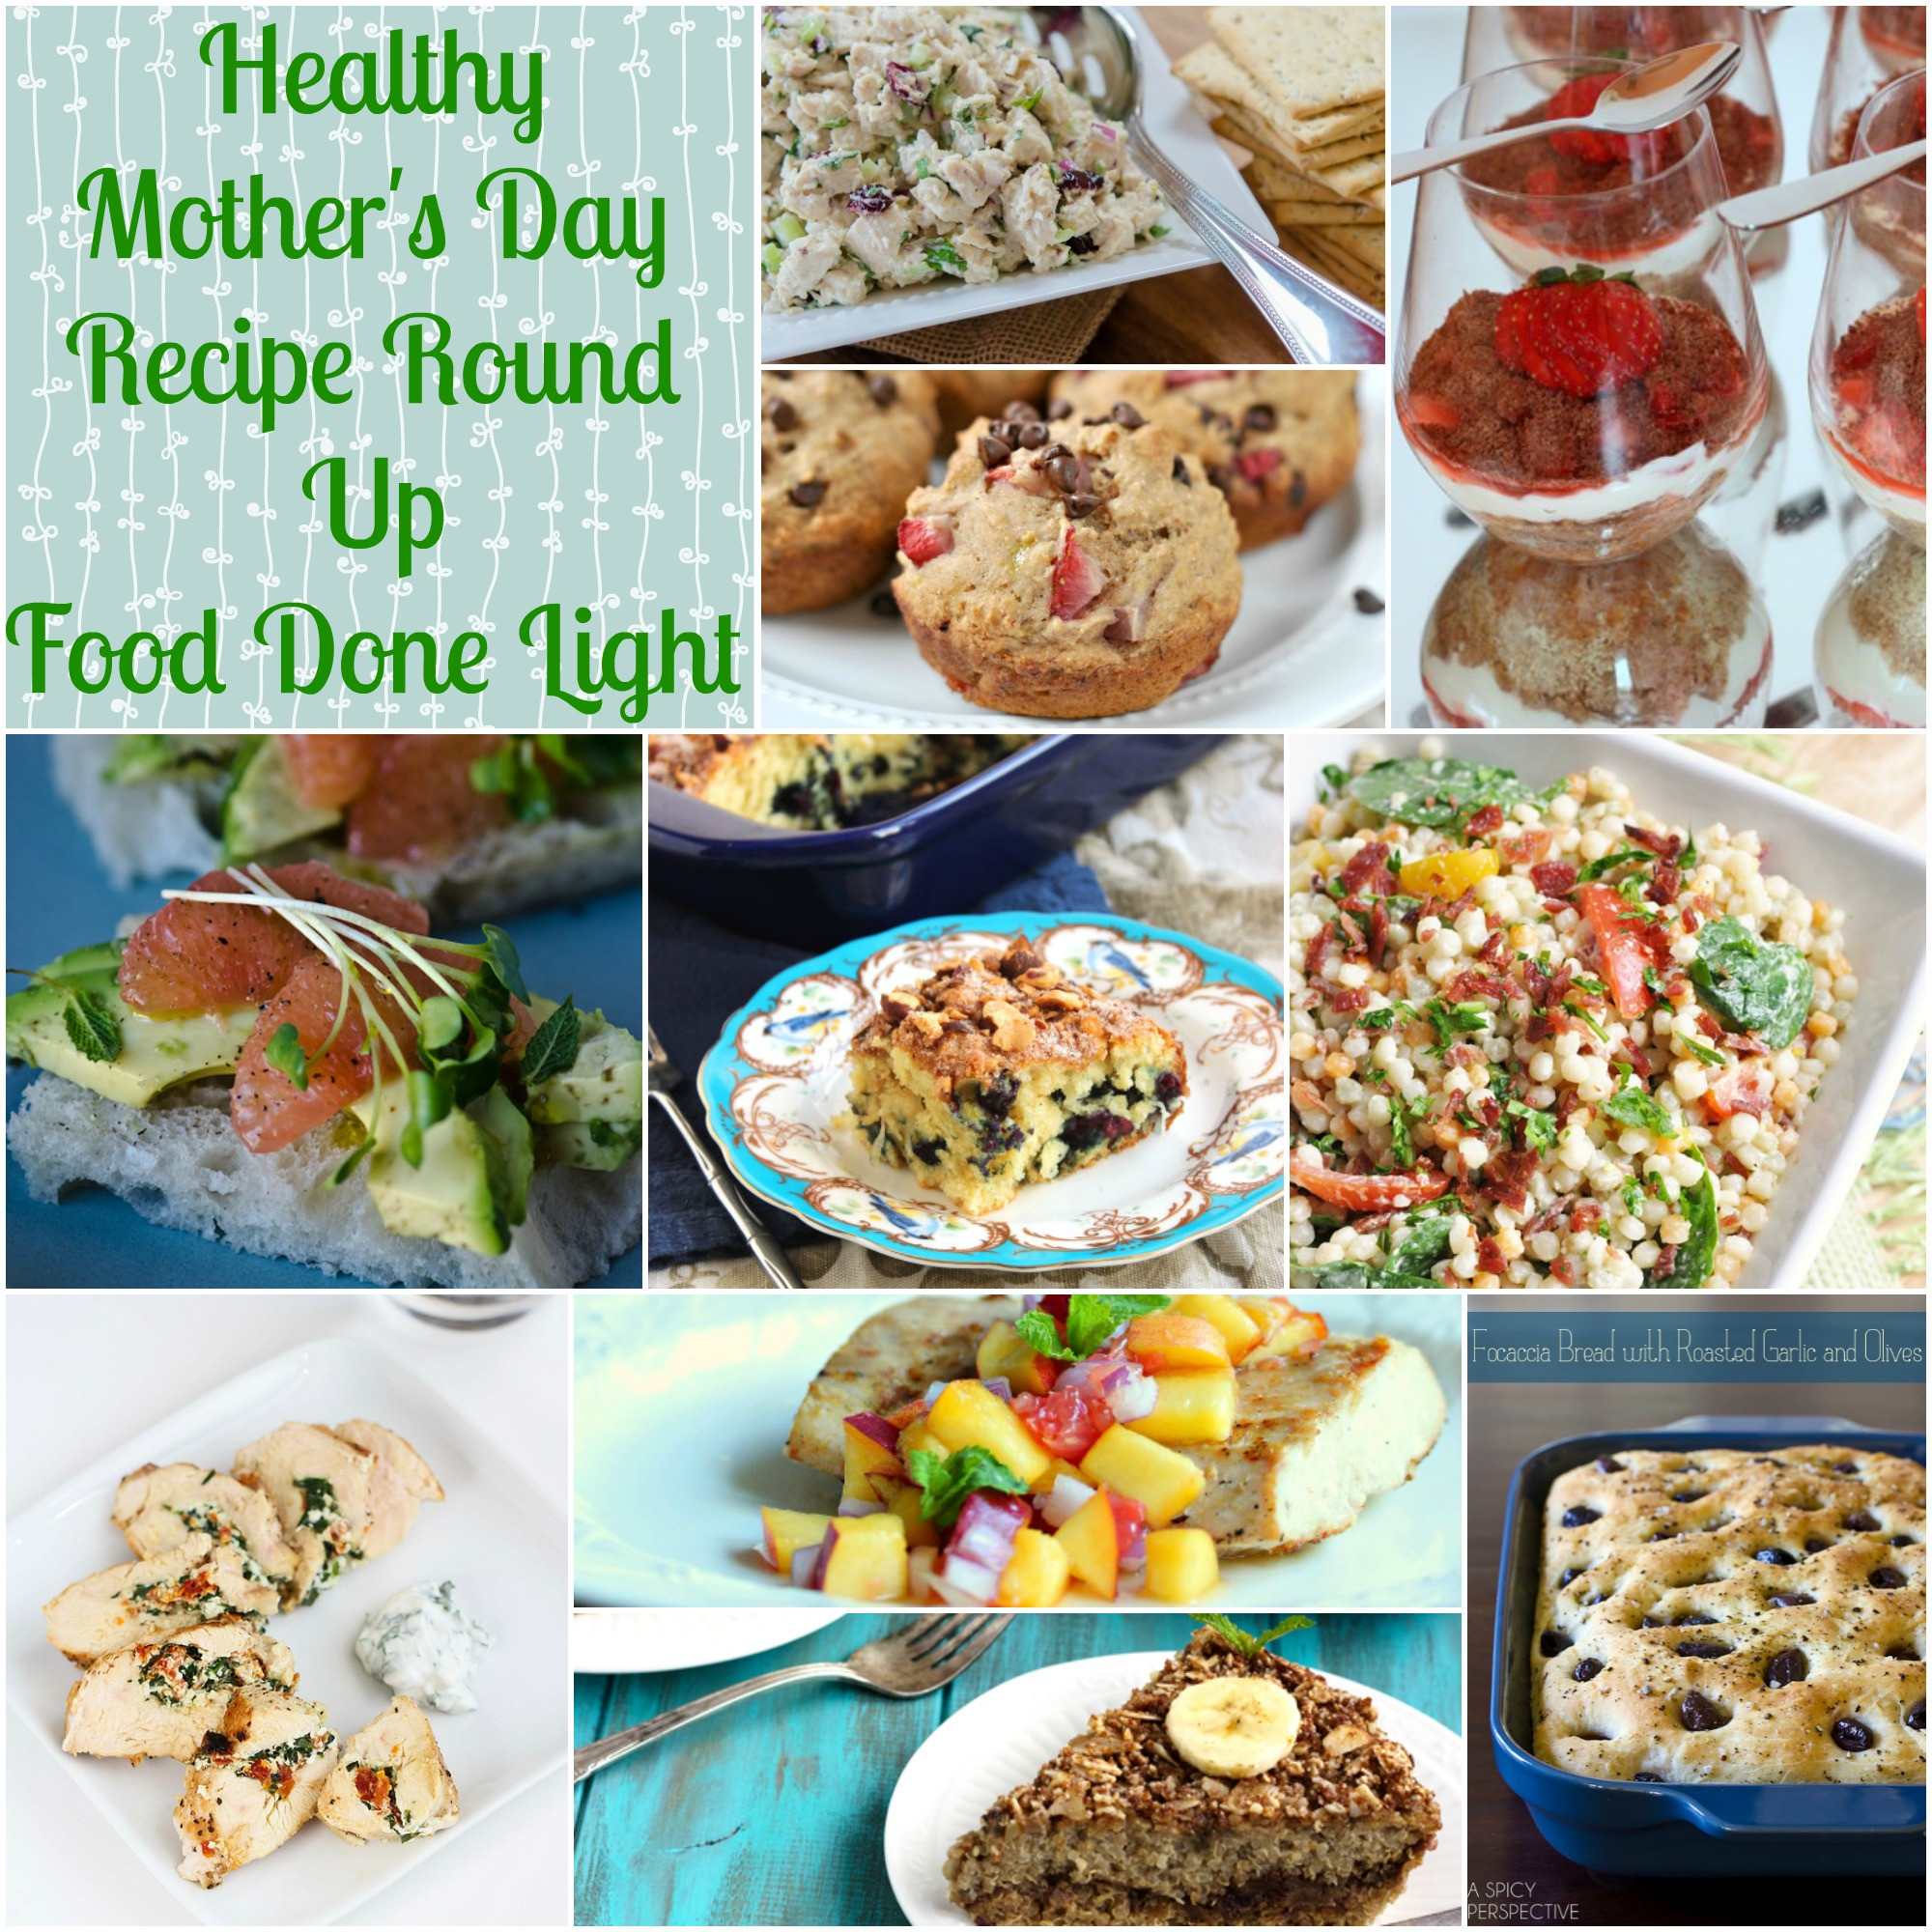 Mothers Day Dinner Recipes  Healthy Mother s Day Recipe Round Up Food Done Light